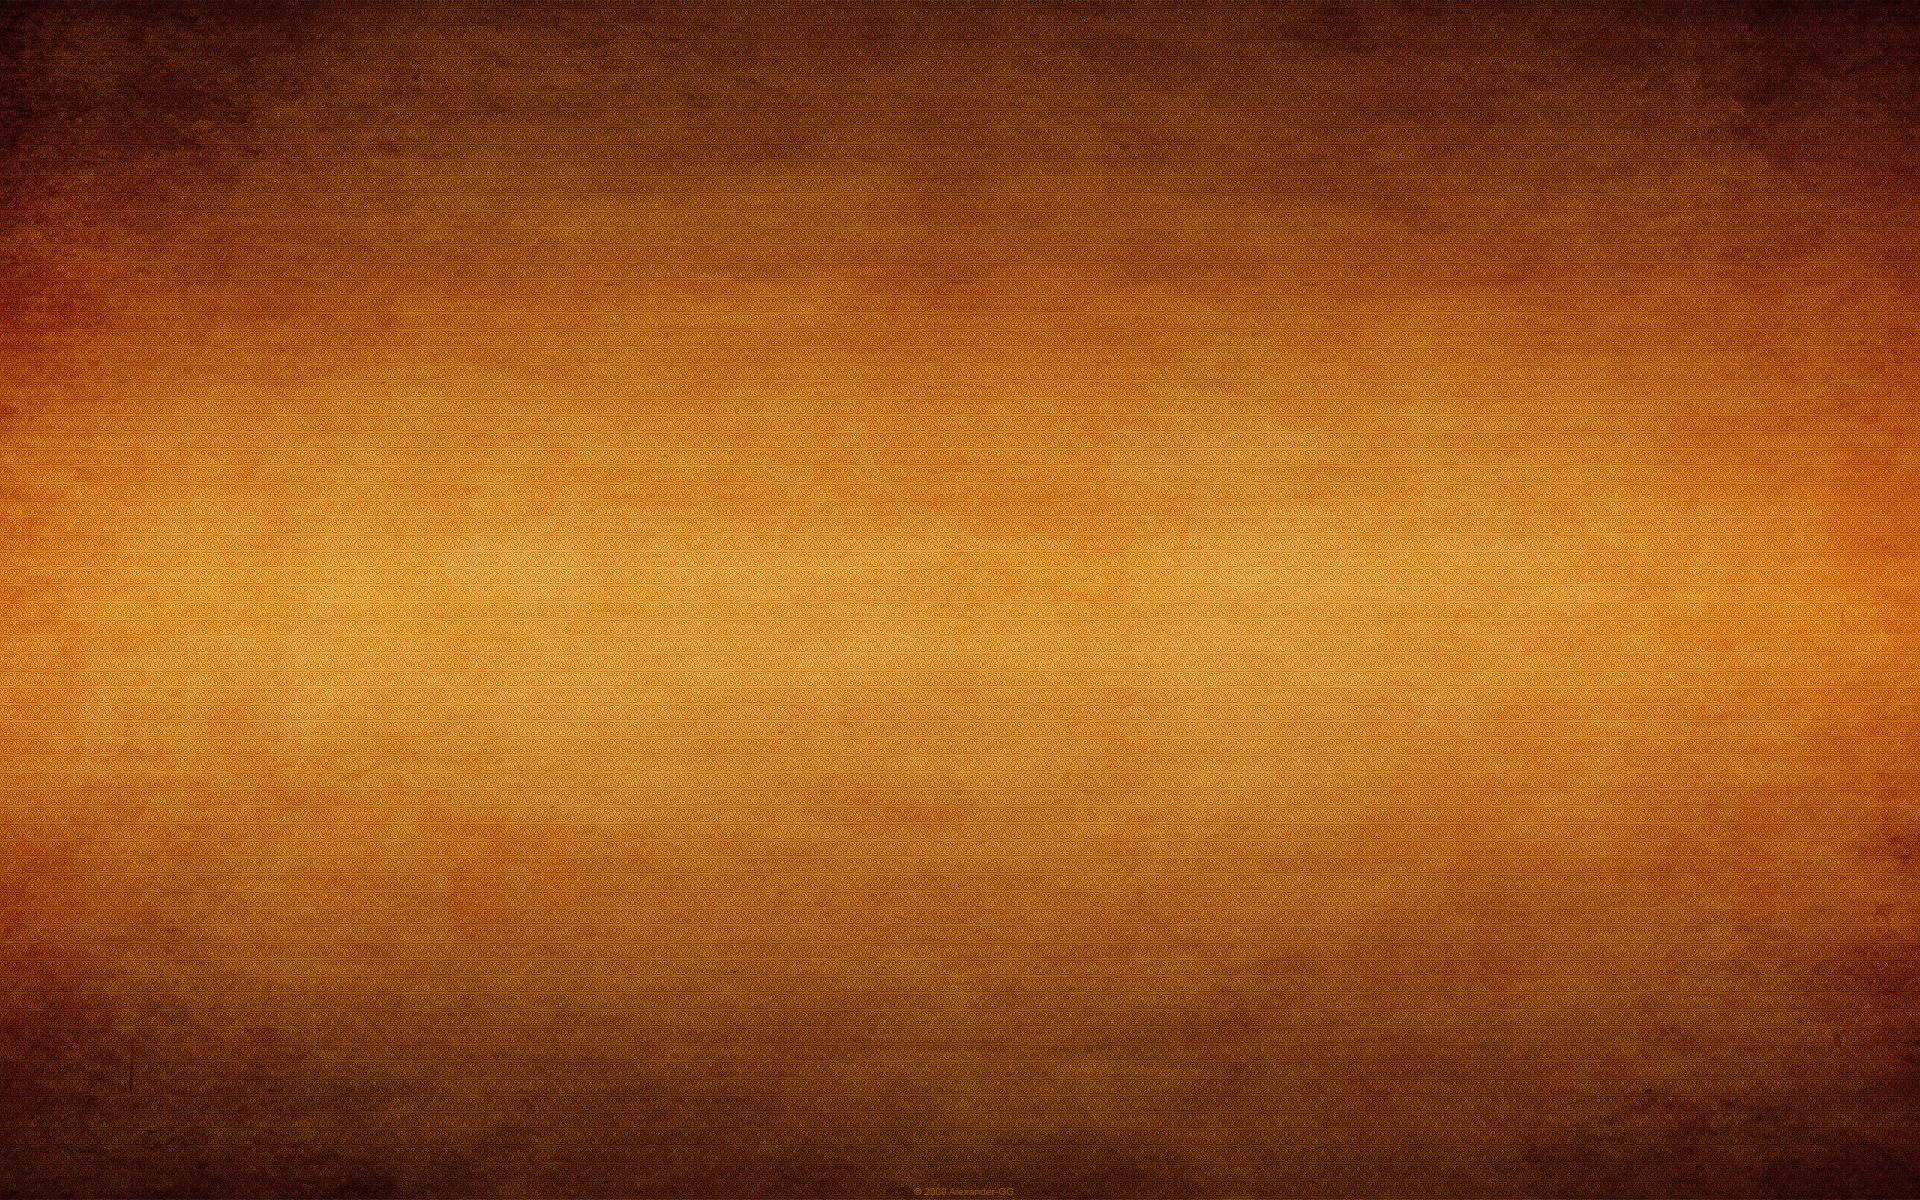 Brown Backgrounds Wallpaper